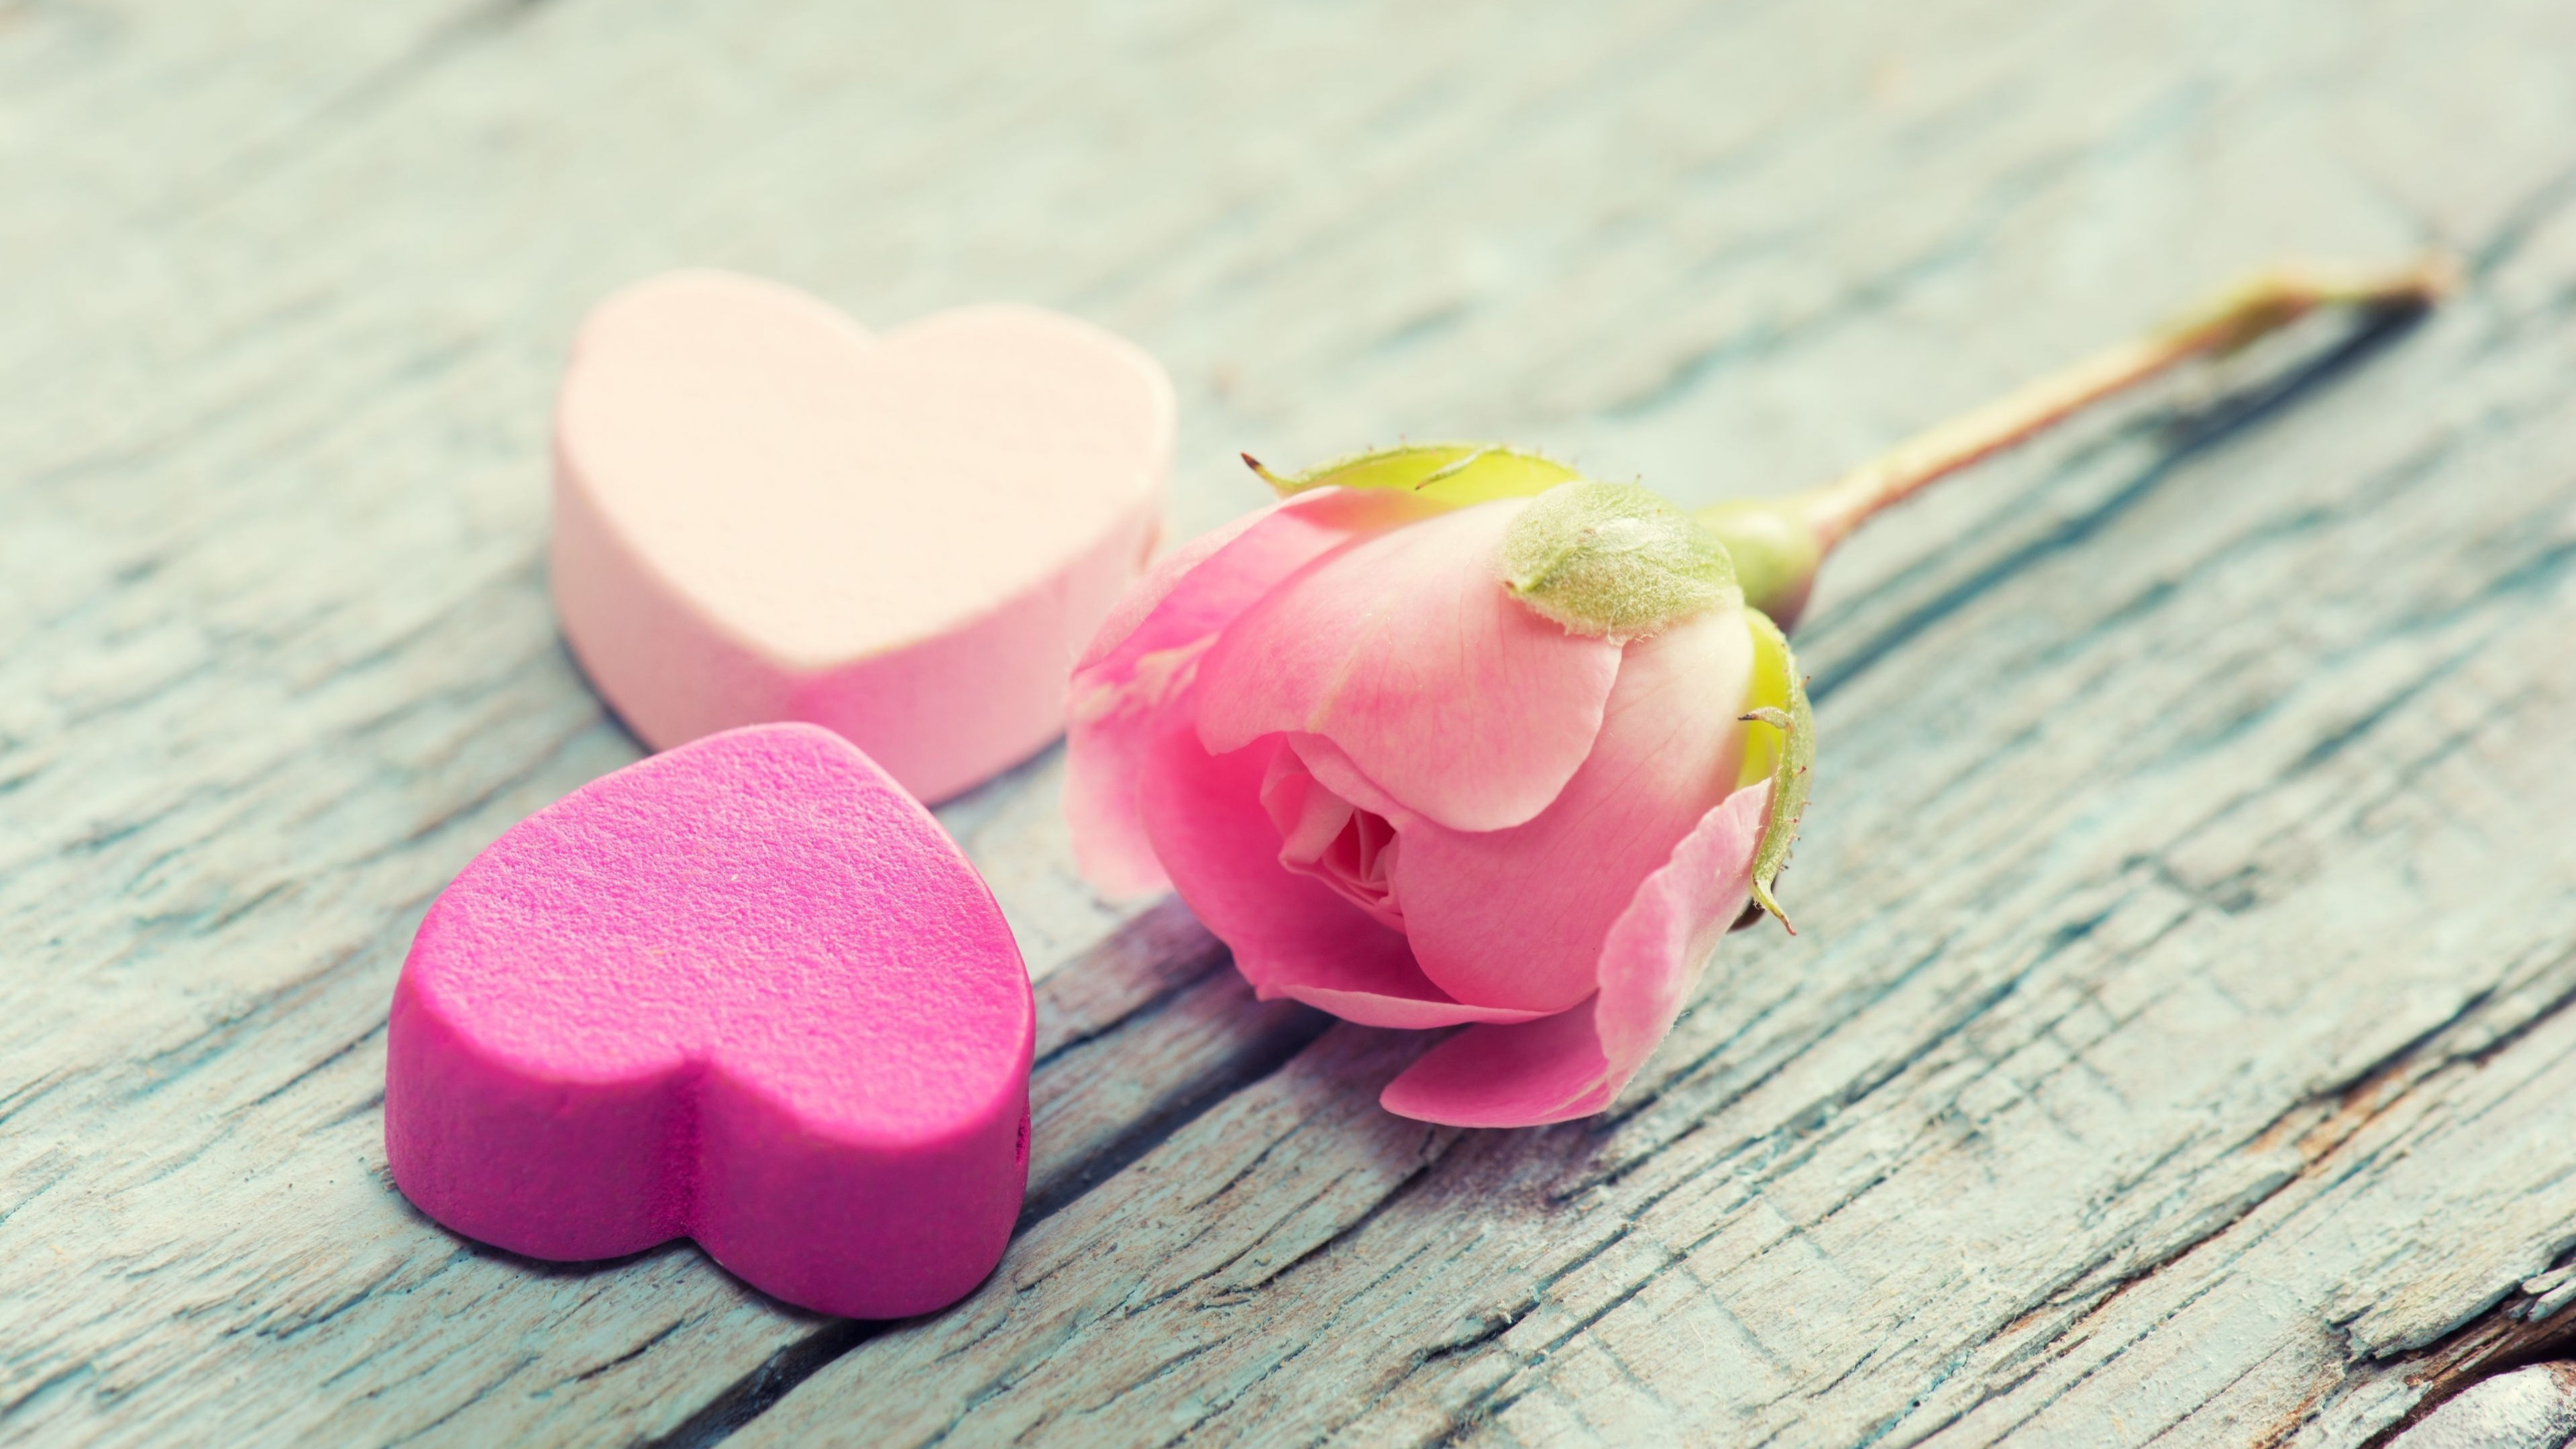 Wallpaper Valentines Day February 14 hearts flowers love 3840x2160